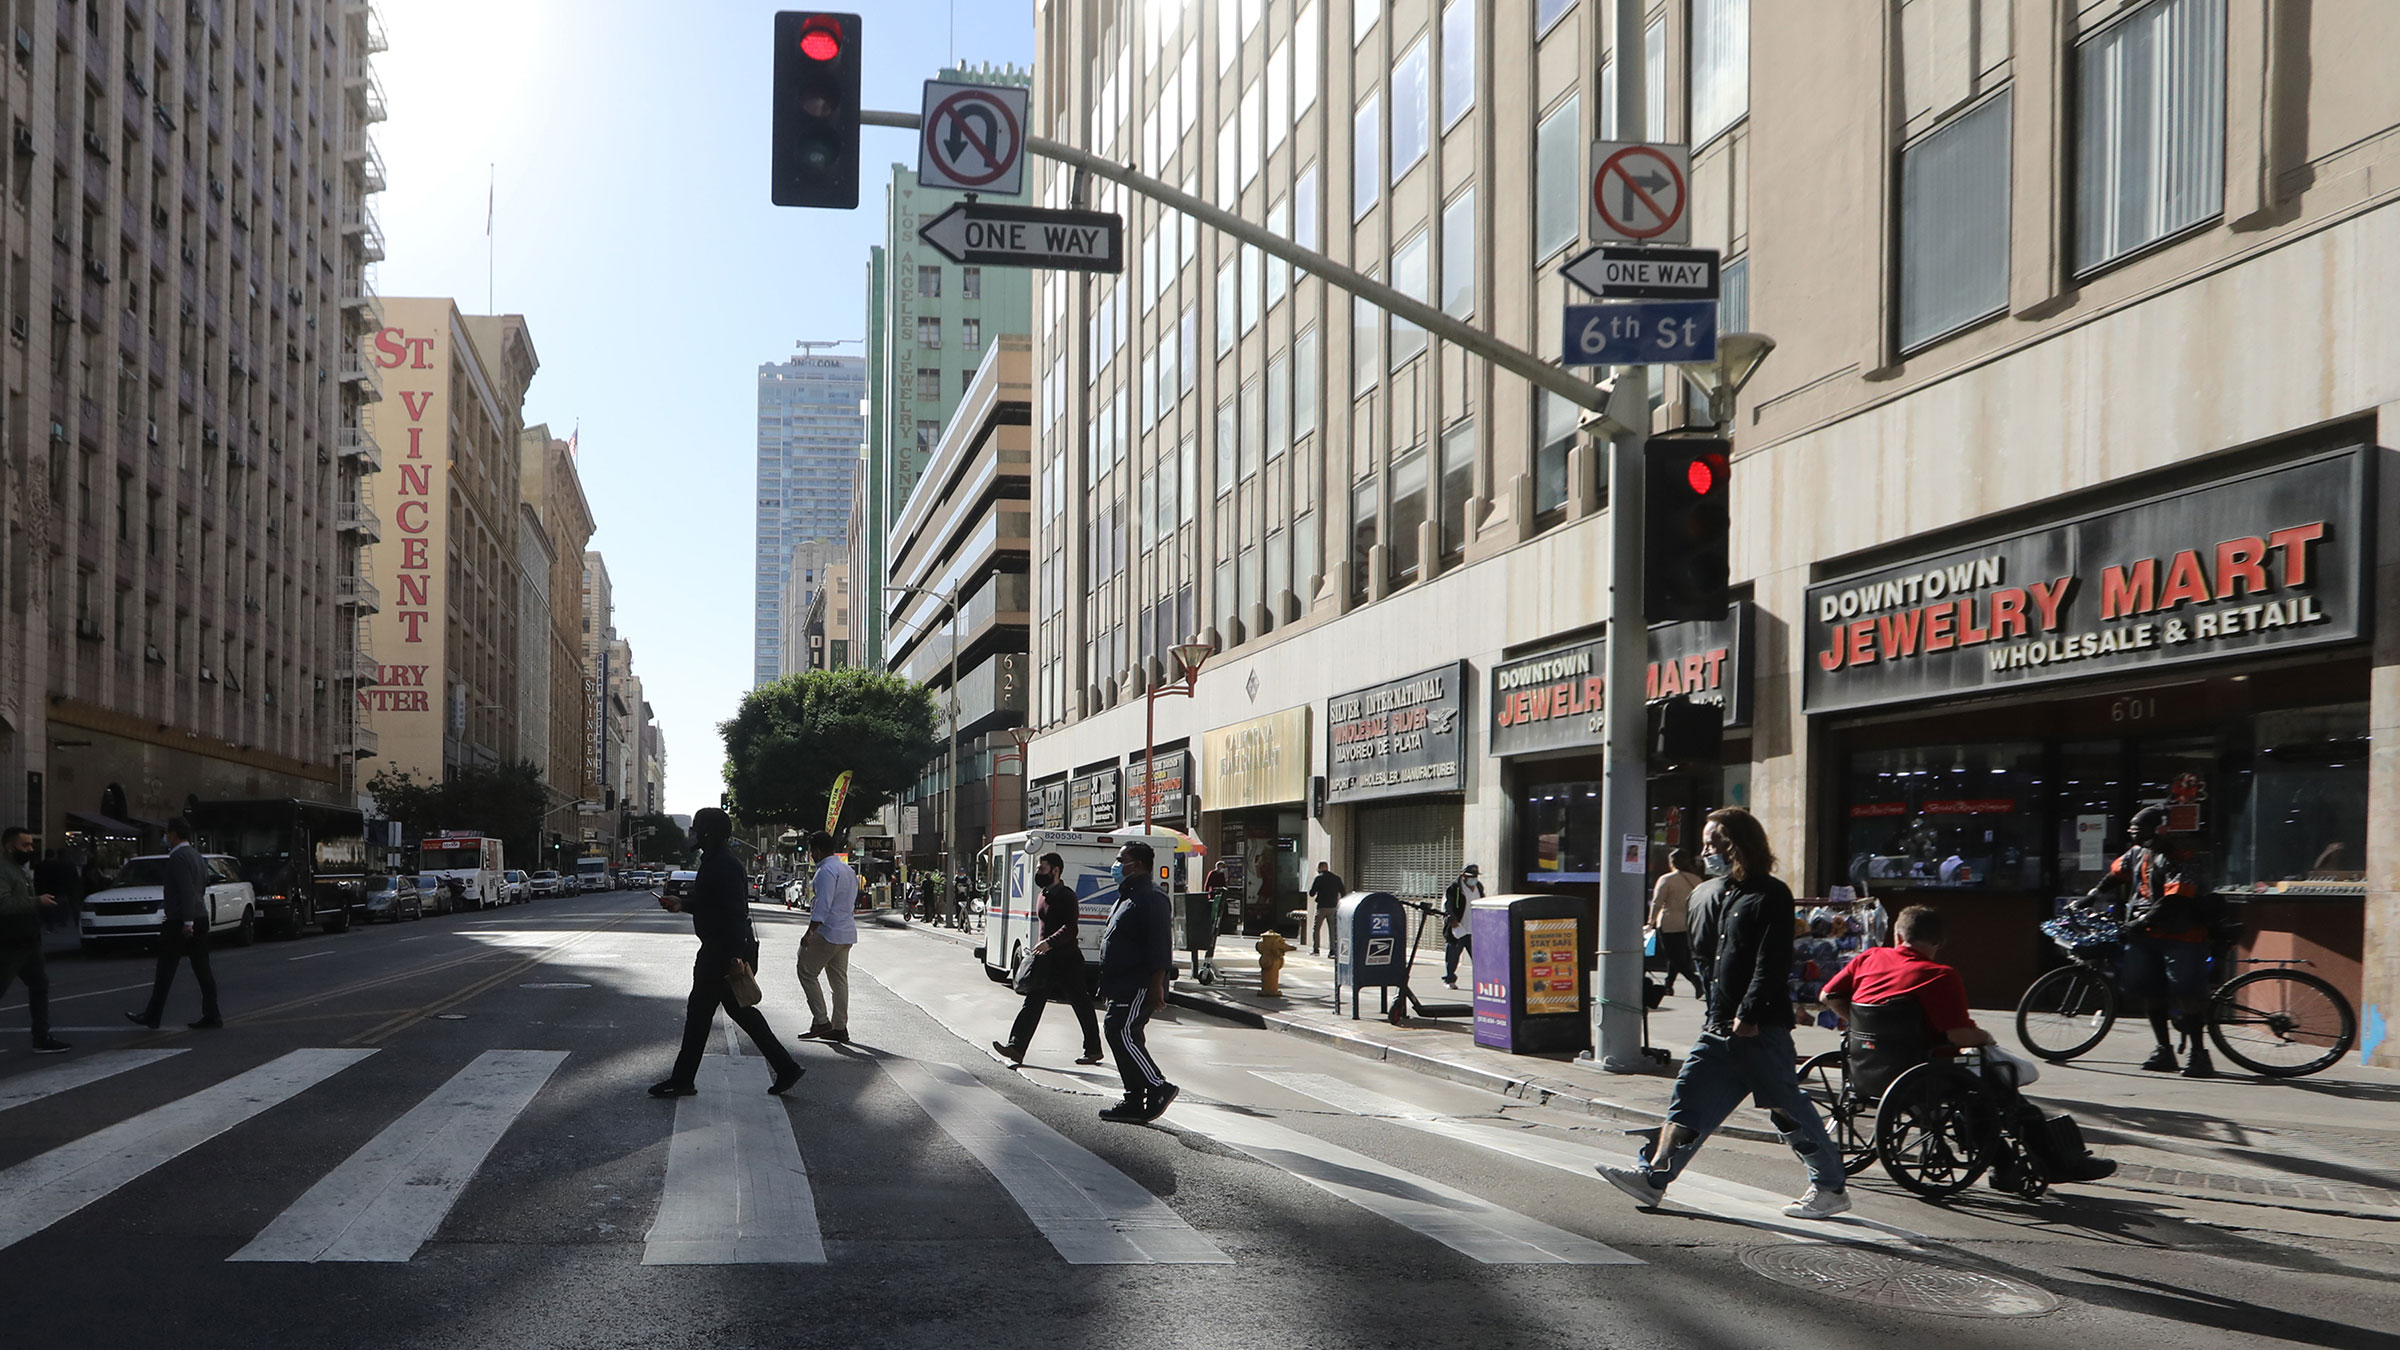 Pedestrians cross a street in downtown Los Angeles, on Thursday, December 3.